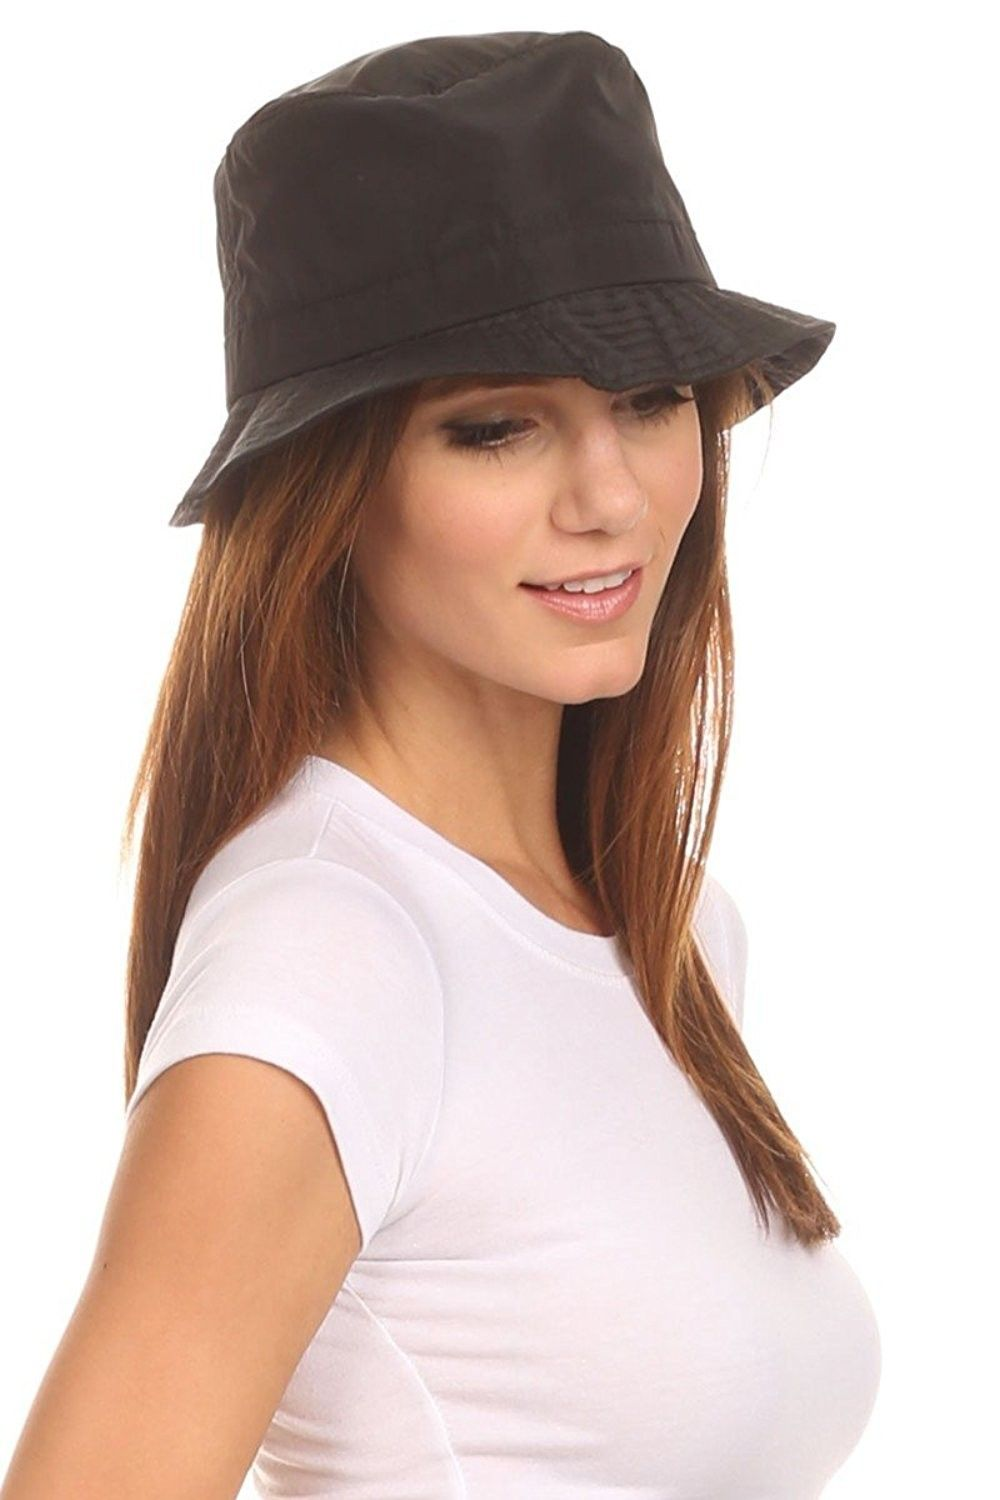 2a4ee4bc31a1bd LL Unisex Packable Rain Hat Lightweight Year Round Use - 2 Sizes for Best  Fit - Black Bucket - C912HZ13BV3 - Hats & Caps, Women's Hats & Caps, Rain  Hats ...